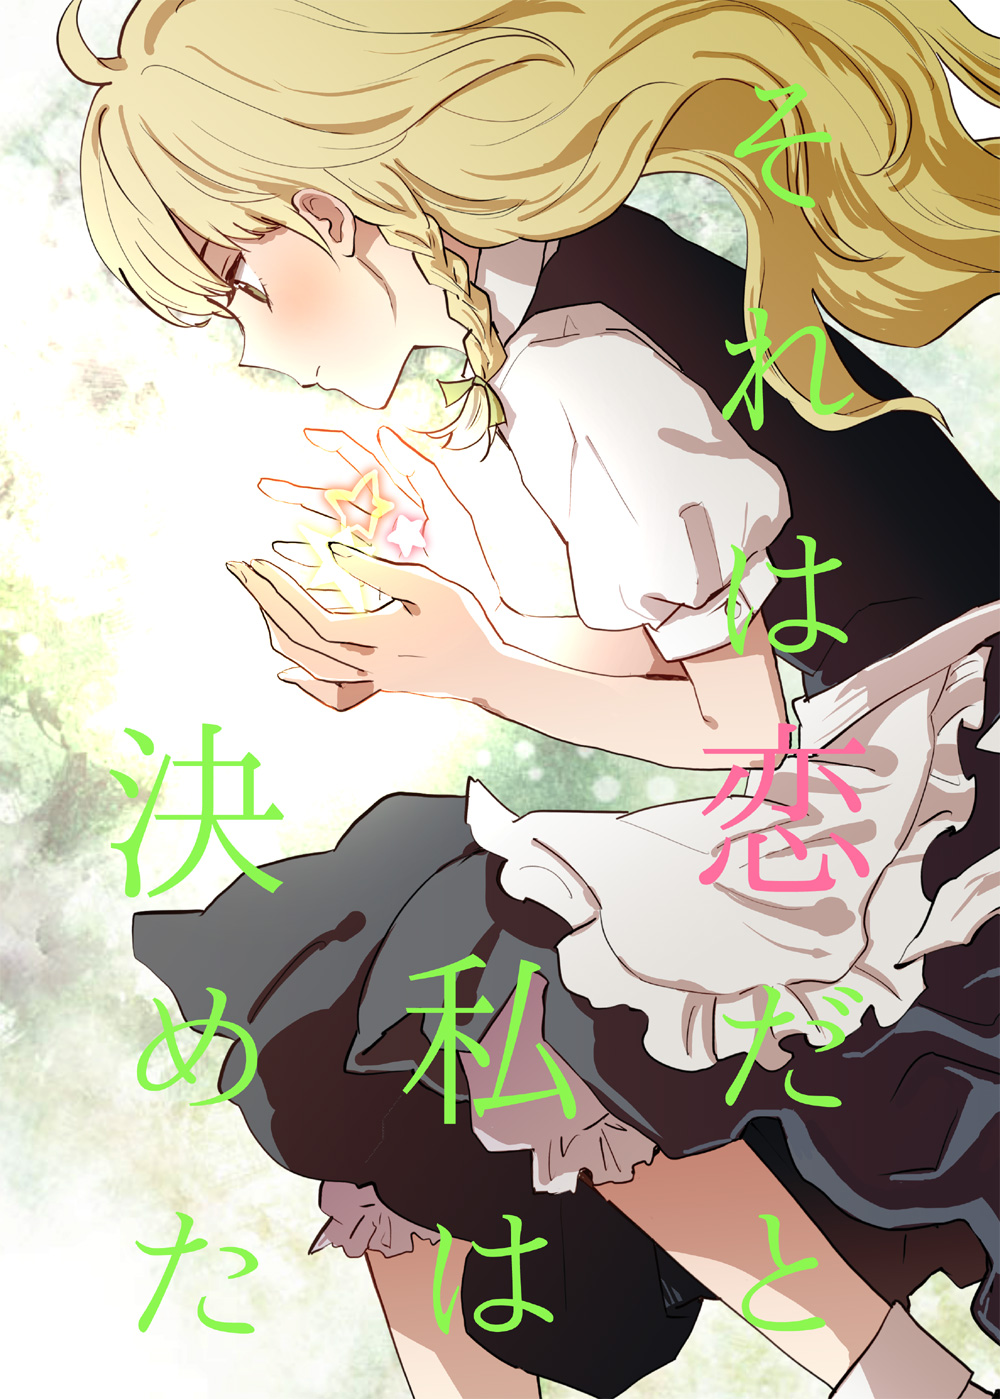 apron black_dress blonde_hair braid closed_mouth commentary_request cover cover_page curly_hair doujin_cover dress expressionless frilled_apron frilled_dress frills from_side half-closed_eyes hands_up highres kirisame_marisa kuma_(crimsonvanilla) light_frown long_dress master_spark no_hat no_headwear puffy_short_sleeves puffy_sleeves short_sleeves side_braid single_braid socks touhou translation_request turtleneck waist_apron white_apron white_legwear yellow_eyes